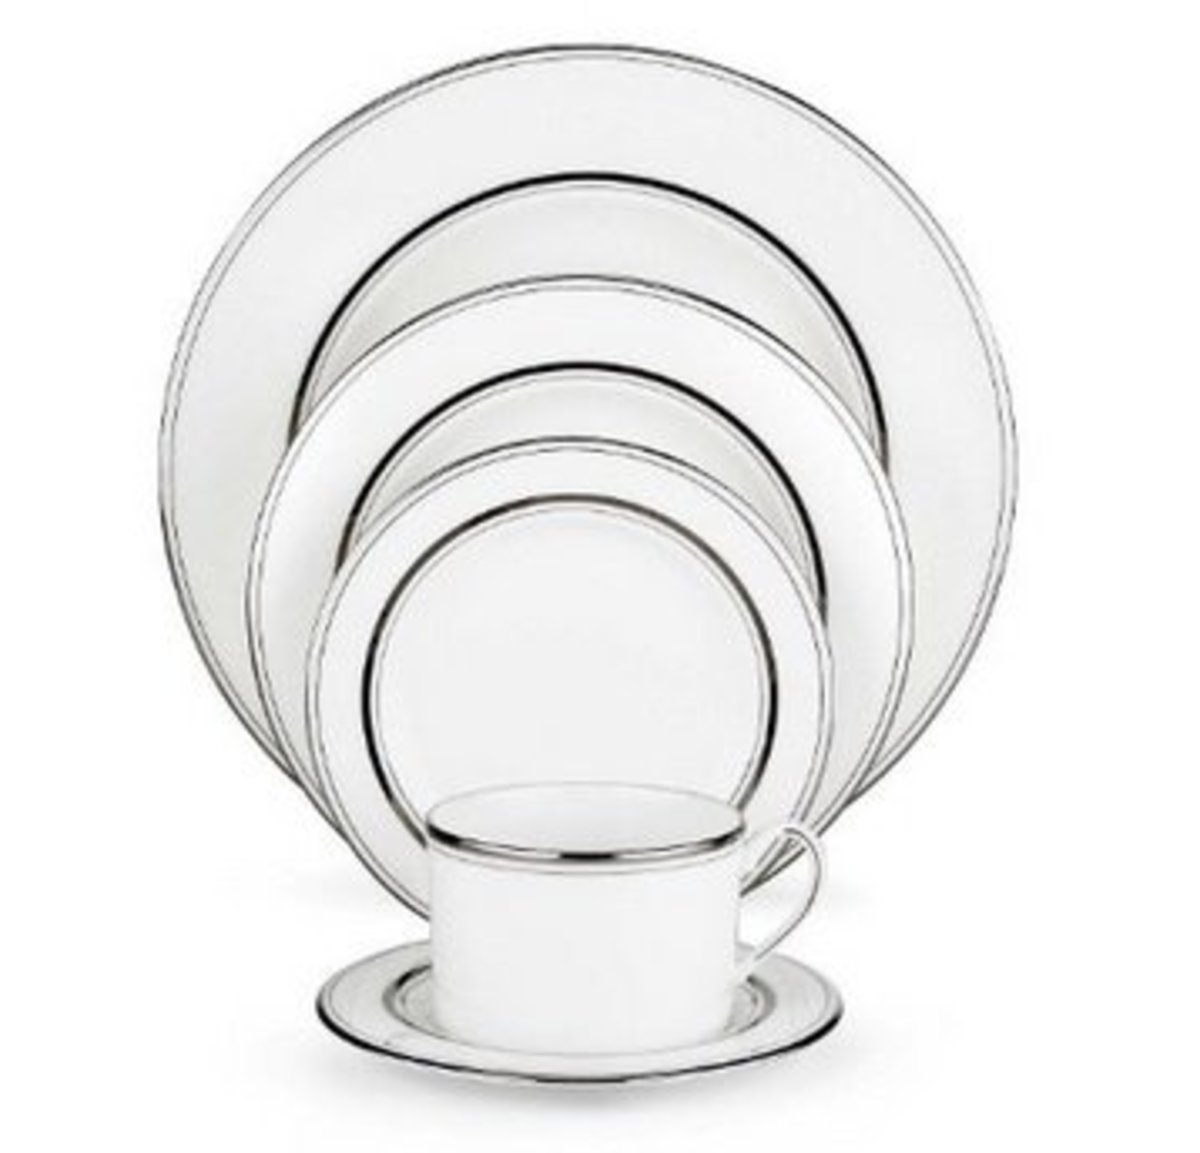 Kate Spade New York Dinnerware Set Made in America  sc 1 st  HubPages & 5 Great Lead-Free Dinnerware Brands Made in the USA | HubPages